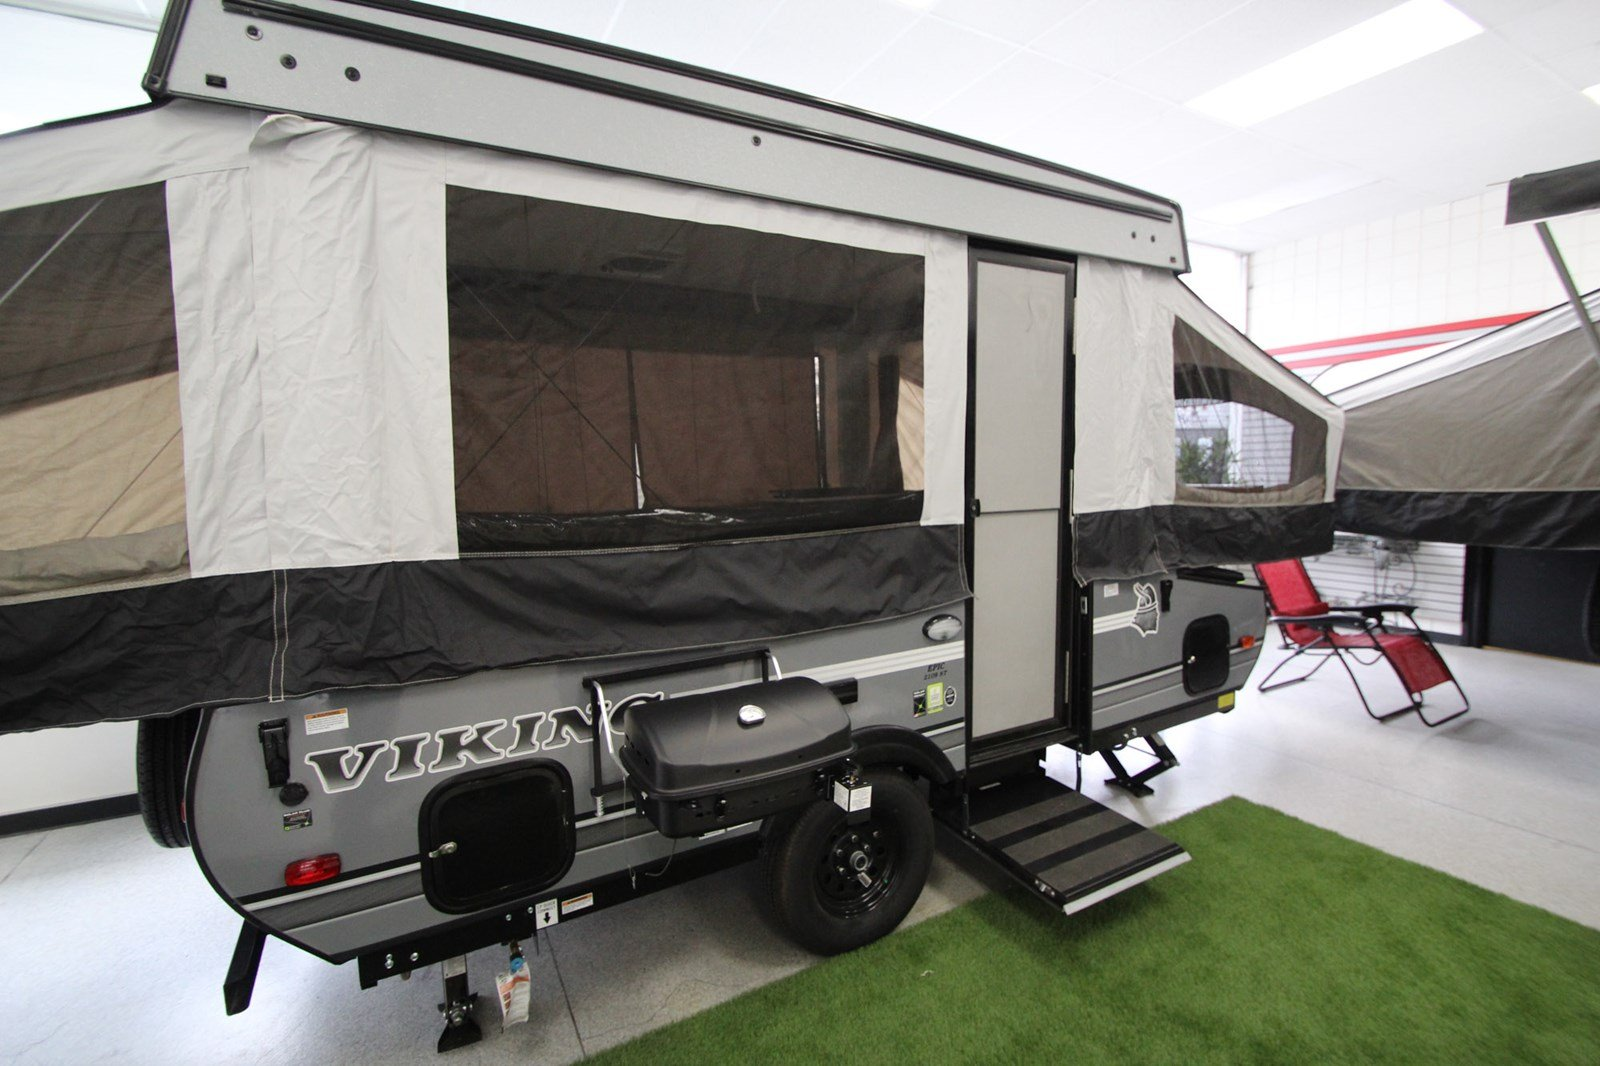 New 2019 Forest River Viking 2108st Cch In Boise Yk061